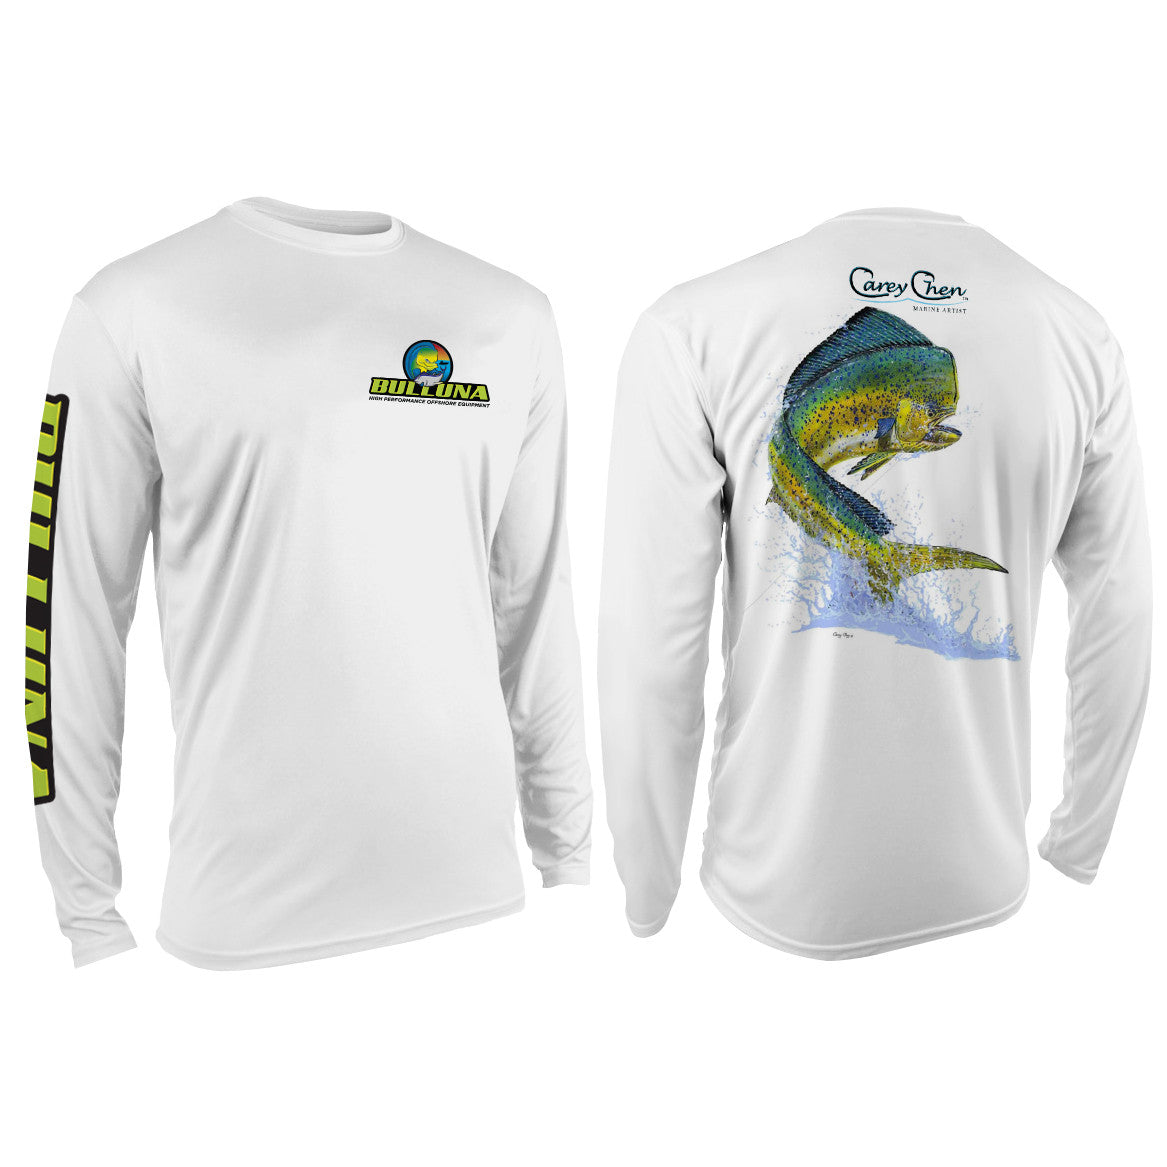 Bulluna Carey Chen Mahi Mahi Long Sleeve Sun Shirt - Youth - Bulluna.com